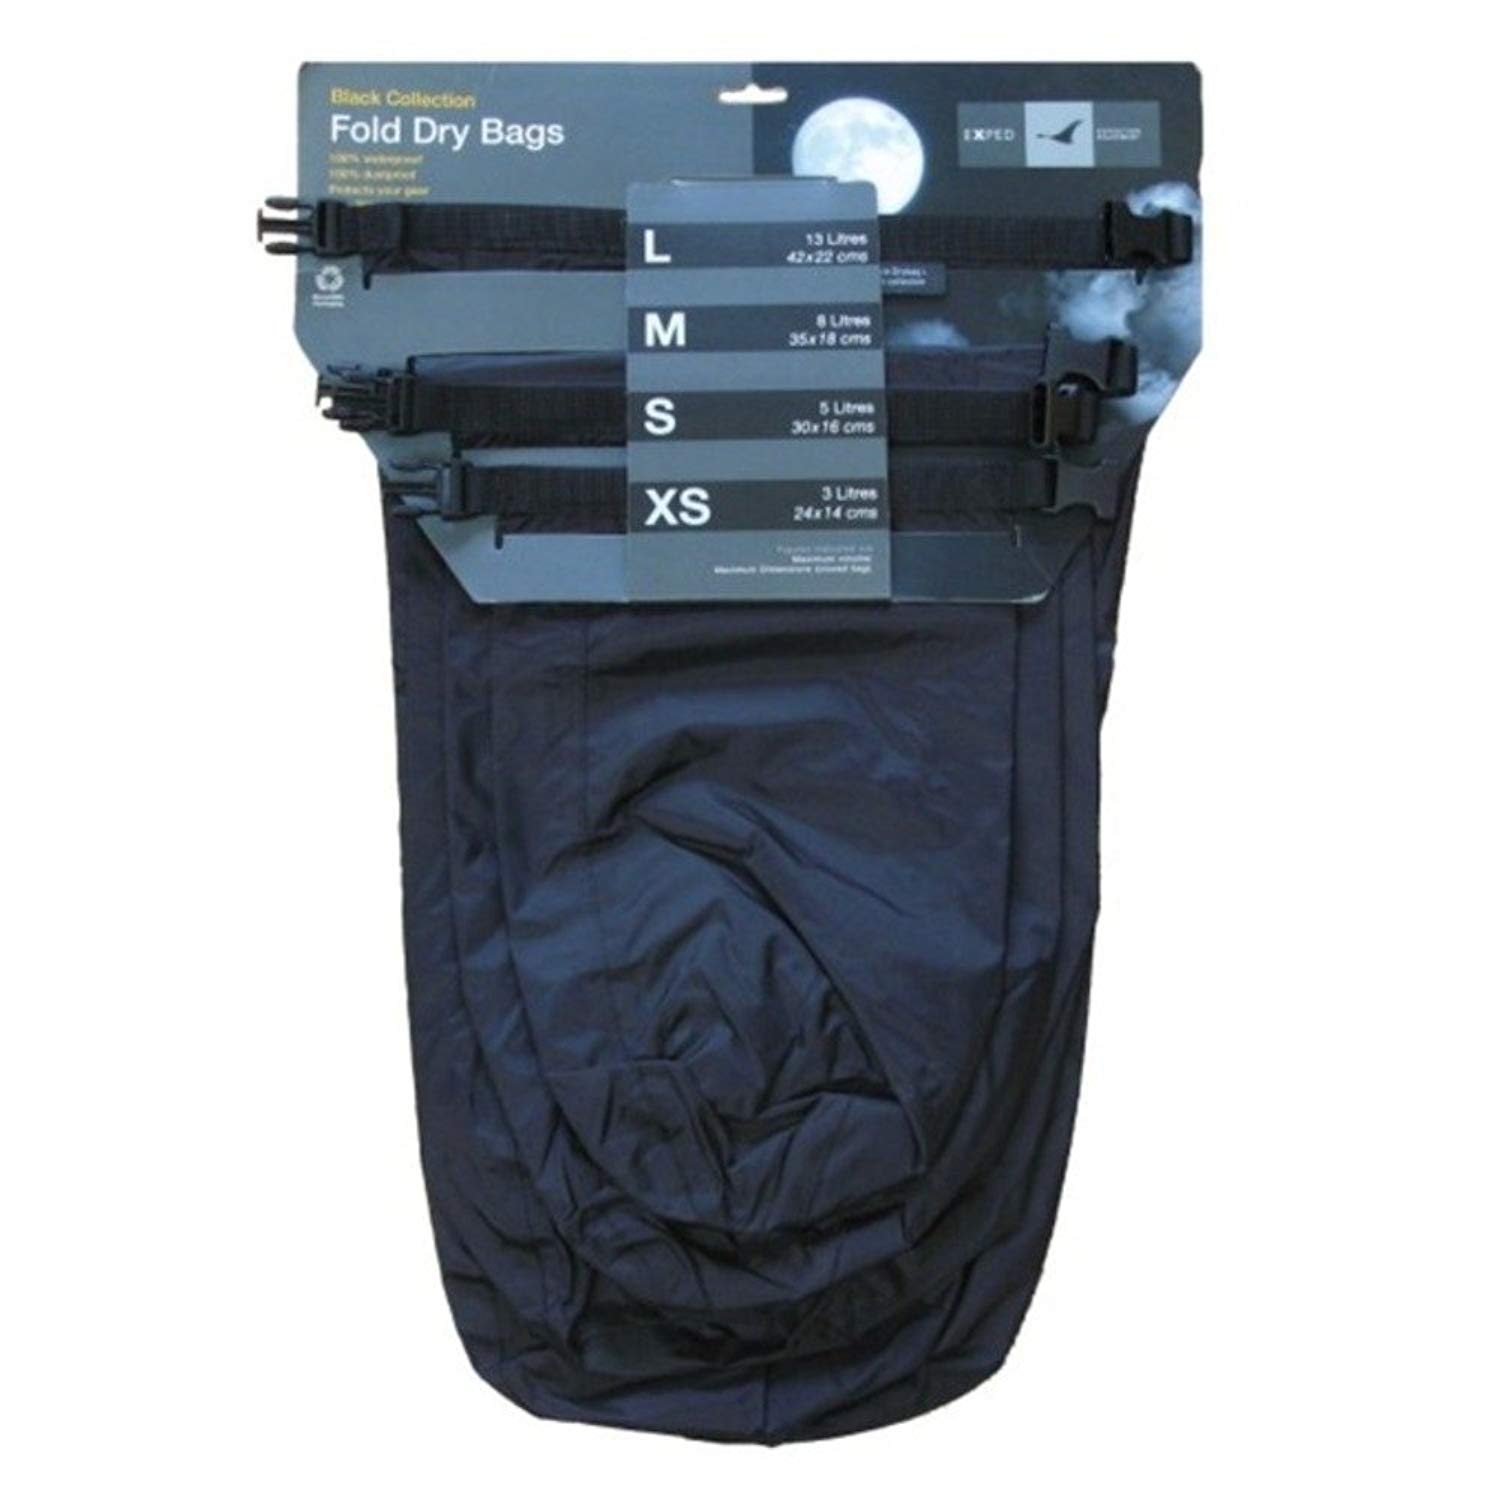 EXPED 100/% Waterproof Fold Dry Bag Bright Blue 13 Litre Large